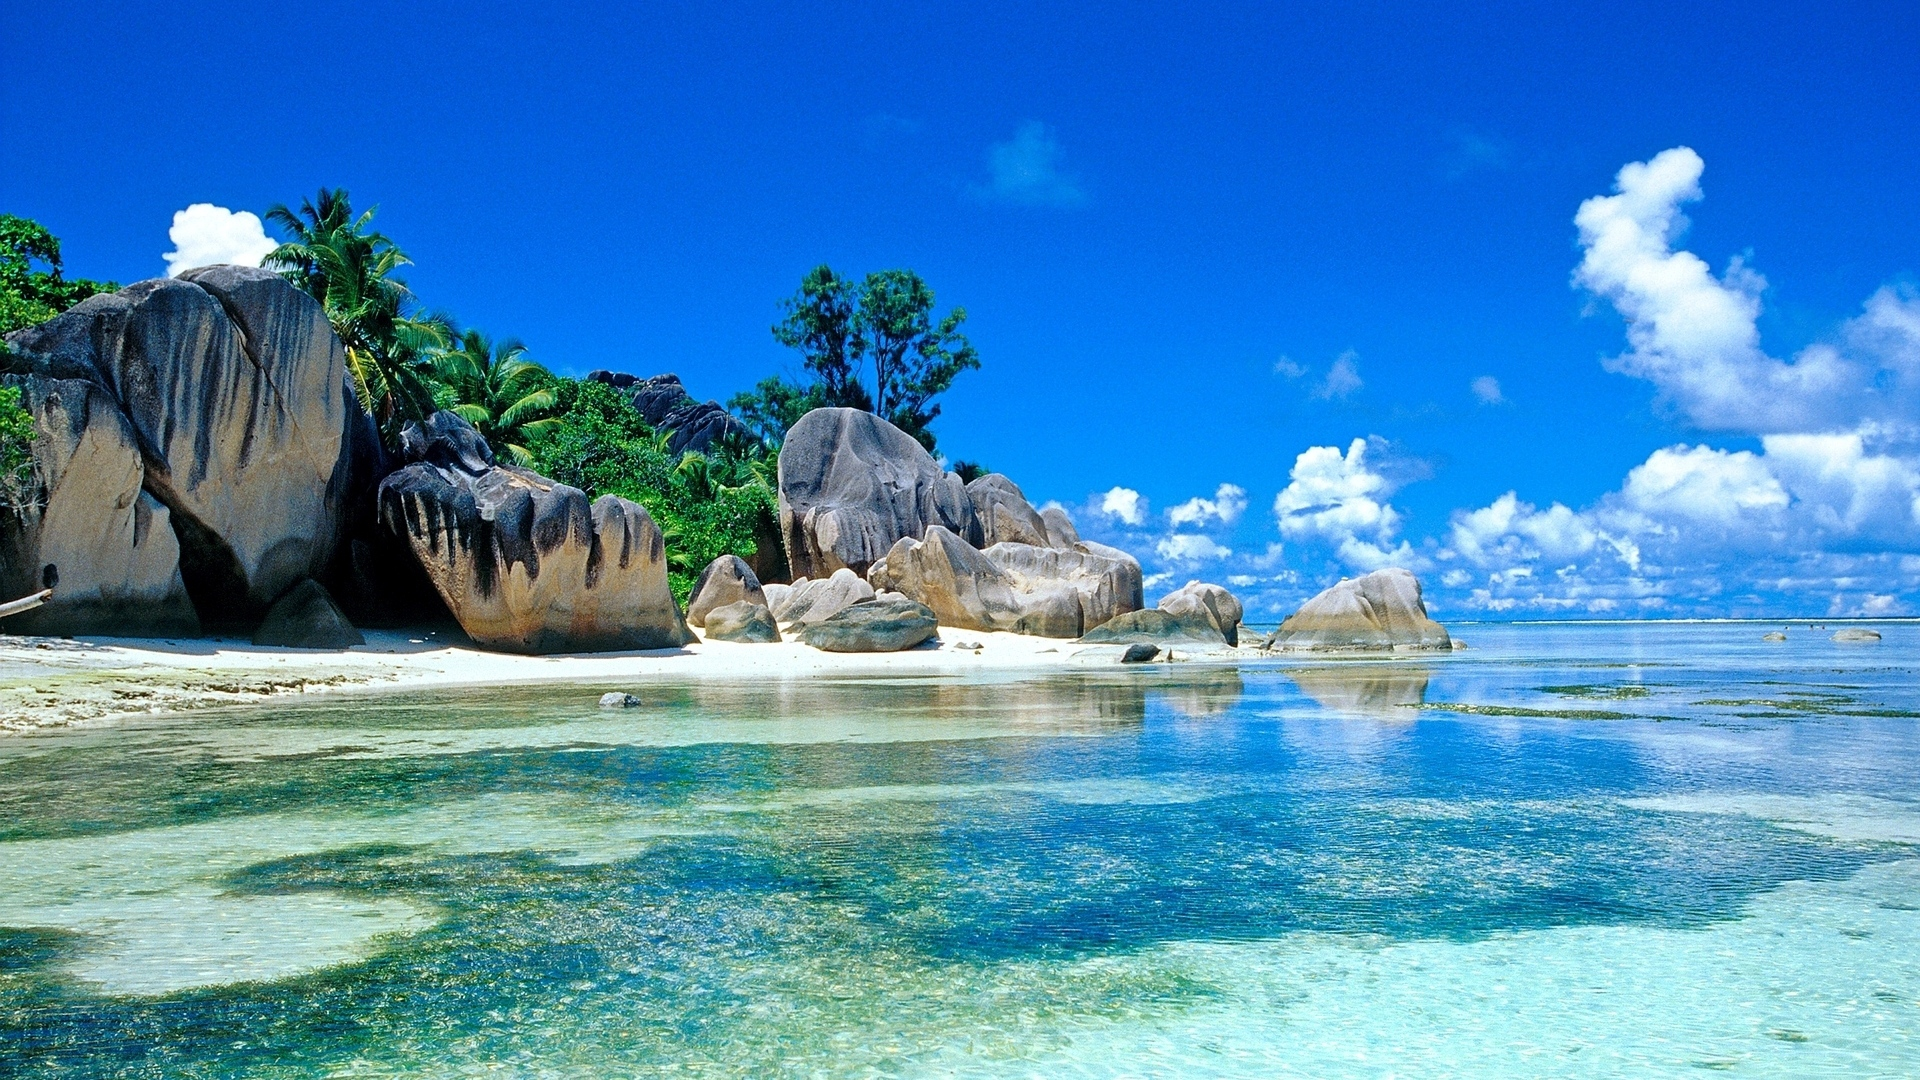 sea palm trees coast stones boulders tropics 1920x1080